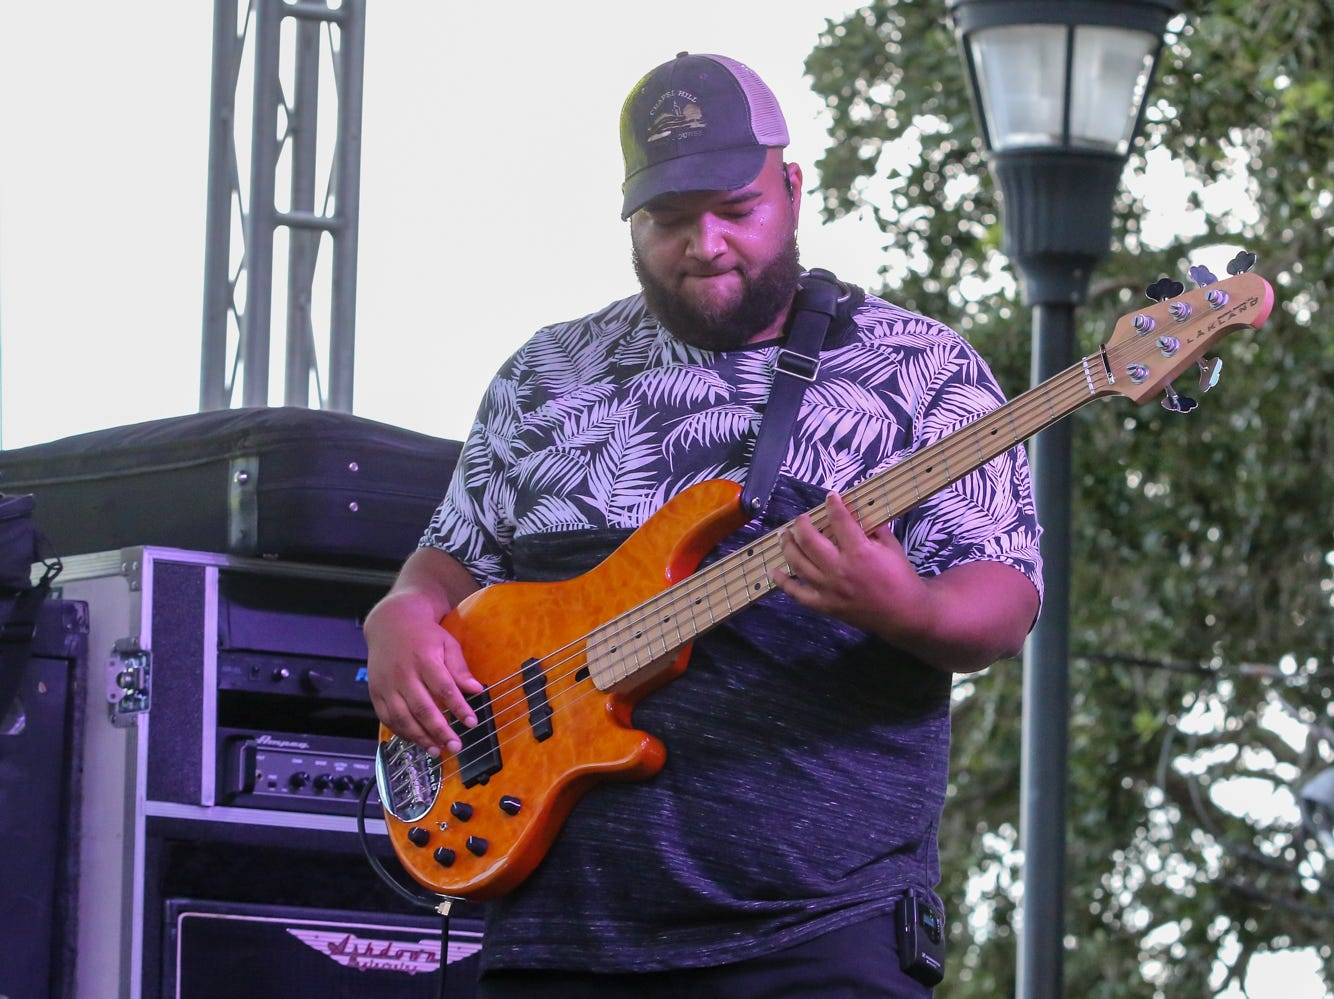 Kenton Bryant performs during the first day of the 41st annual Pensacola Seafood Festival in downtown Pensacola on Friday, September 28, 2018. The festival, which features multiple food vendors, artists, cooking demonstrations, live music and more, is free to enter and continues through Sunday.